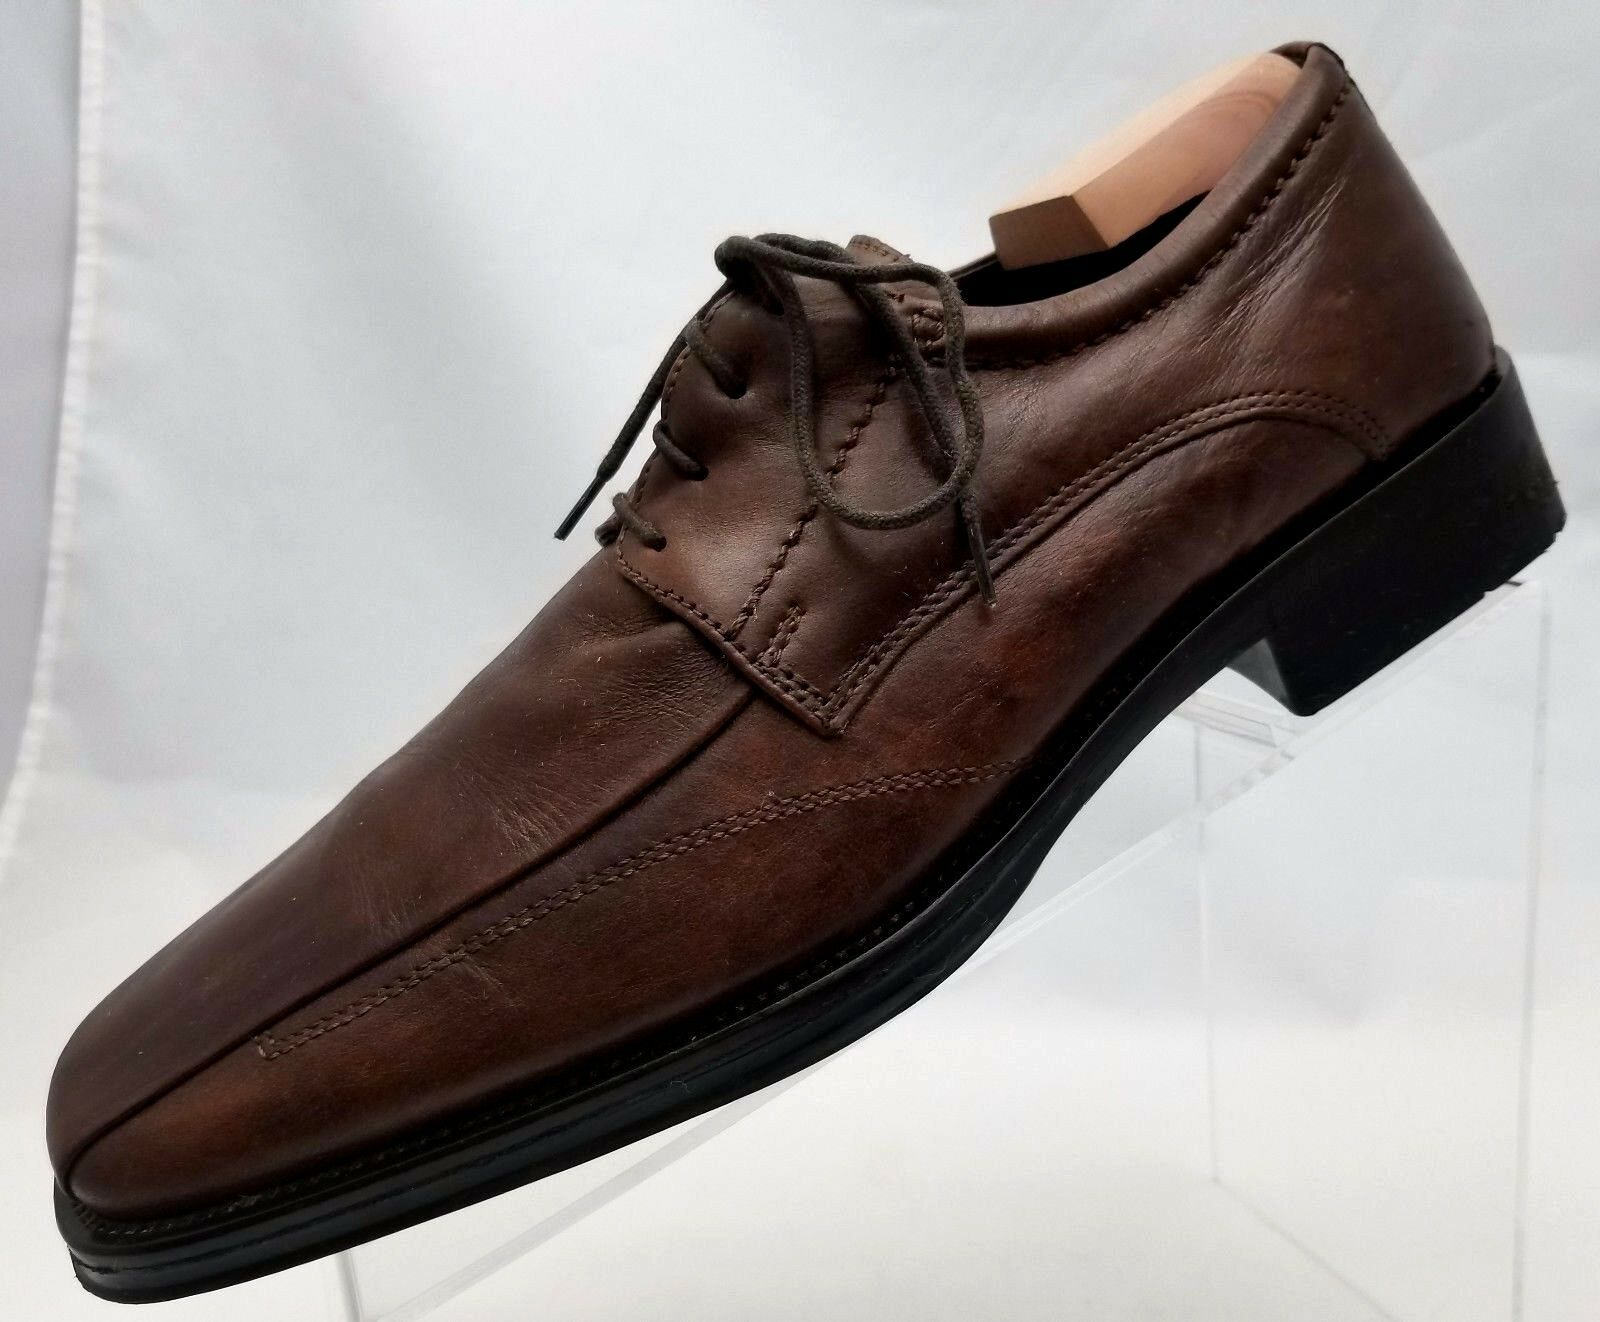 Johnston Murphy Oxford Bike Toe Mens Brown Leather Lace Up shoes Size 9M